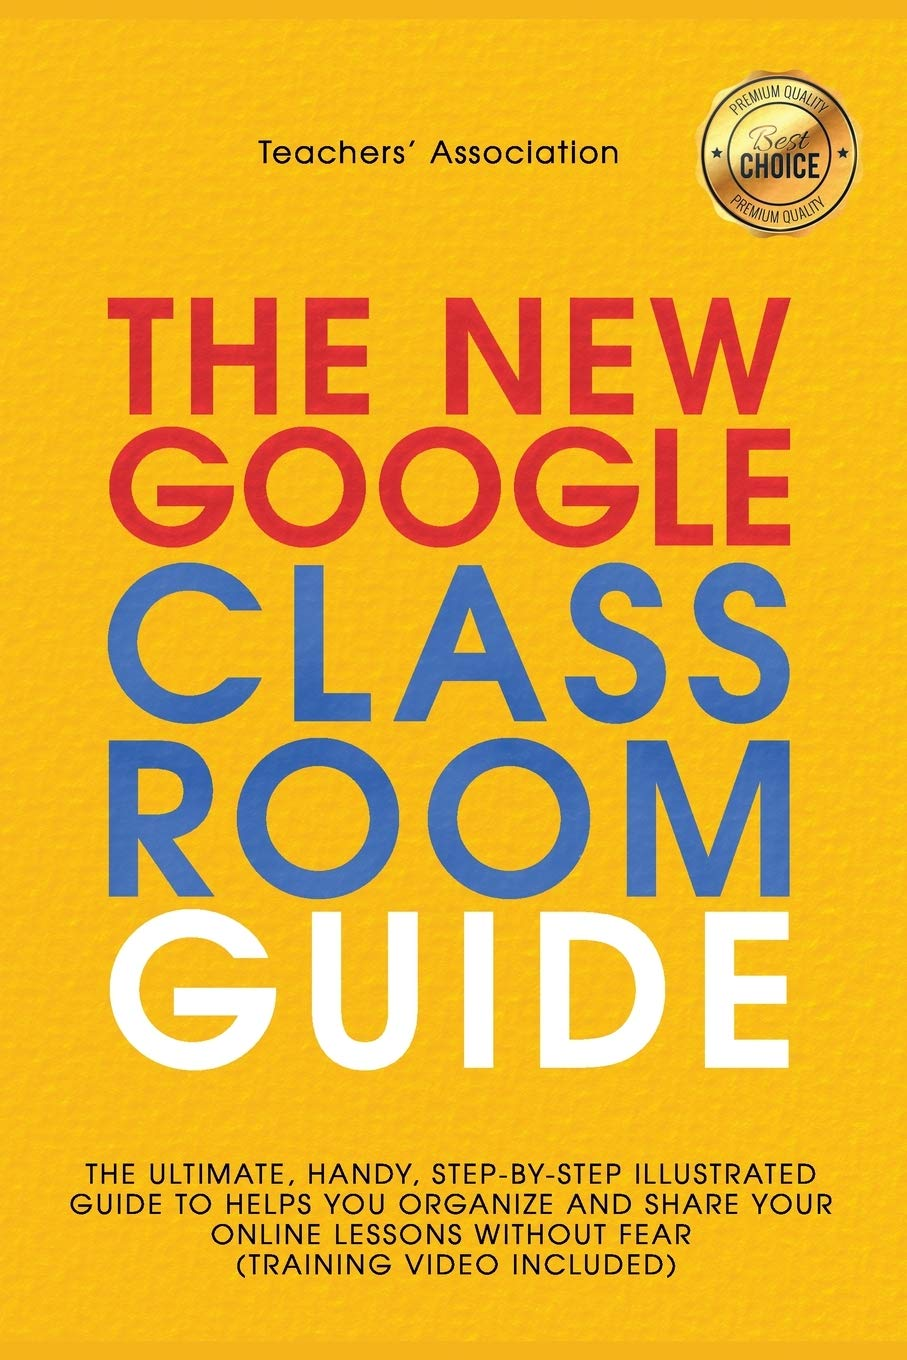 GOOGLE CLASSROOM: The New Ultimate Guide, Handy, and Step-by-Step Illustrated to Helps You Organize and Share Your Online Lessons Without Fear [Training Video Included].